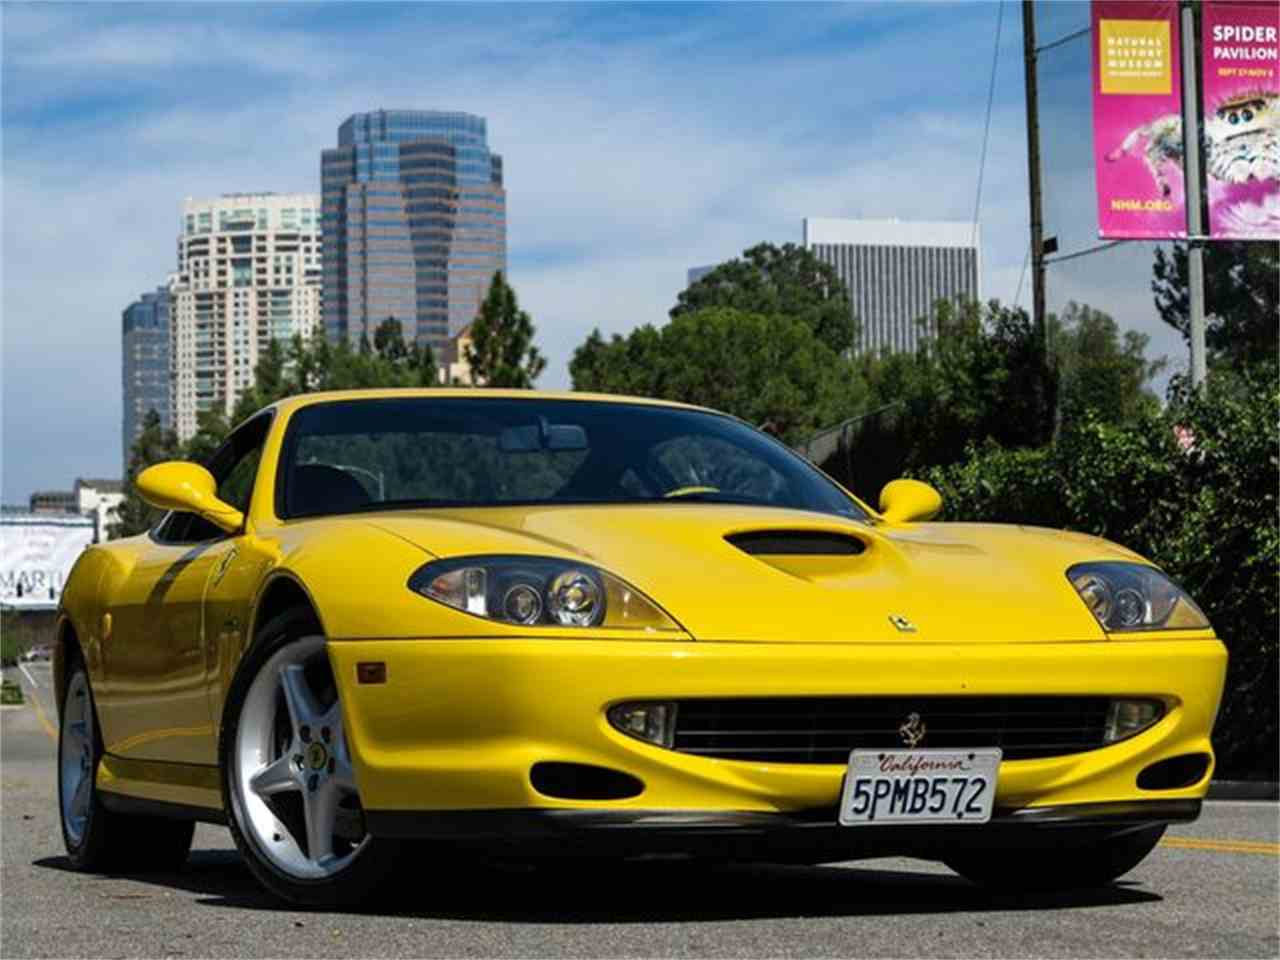 Large Picture of '99 Ferrari 550 Maranello - $194,000.00 Offered by Exclusive Motorcars - FTP9